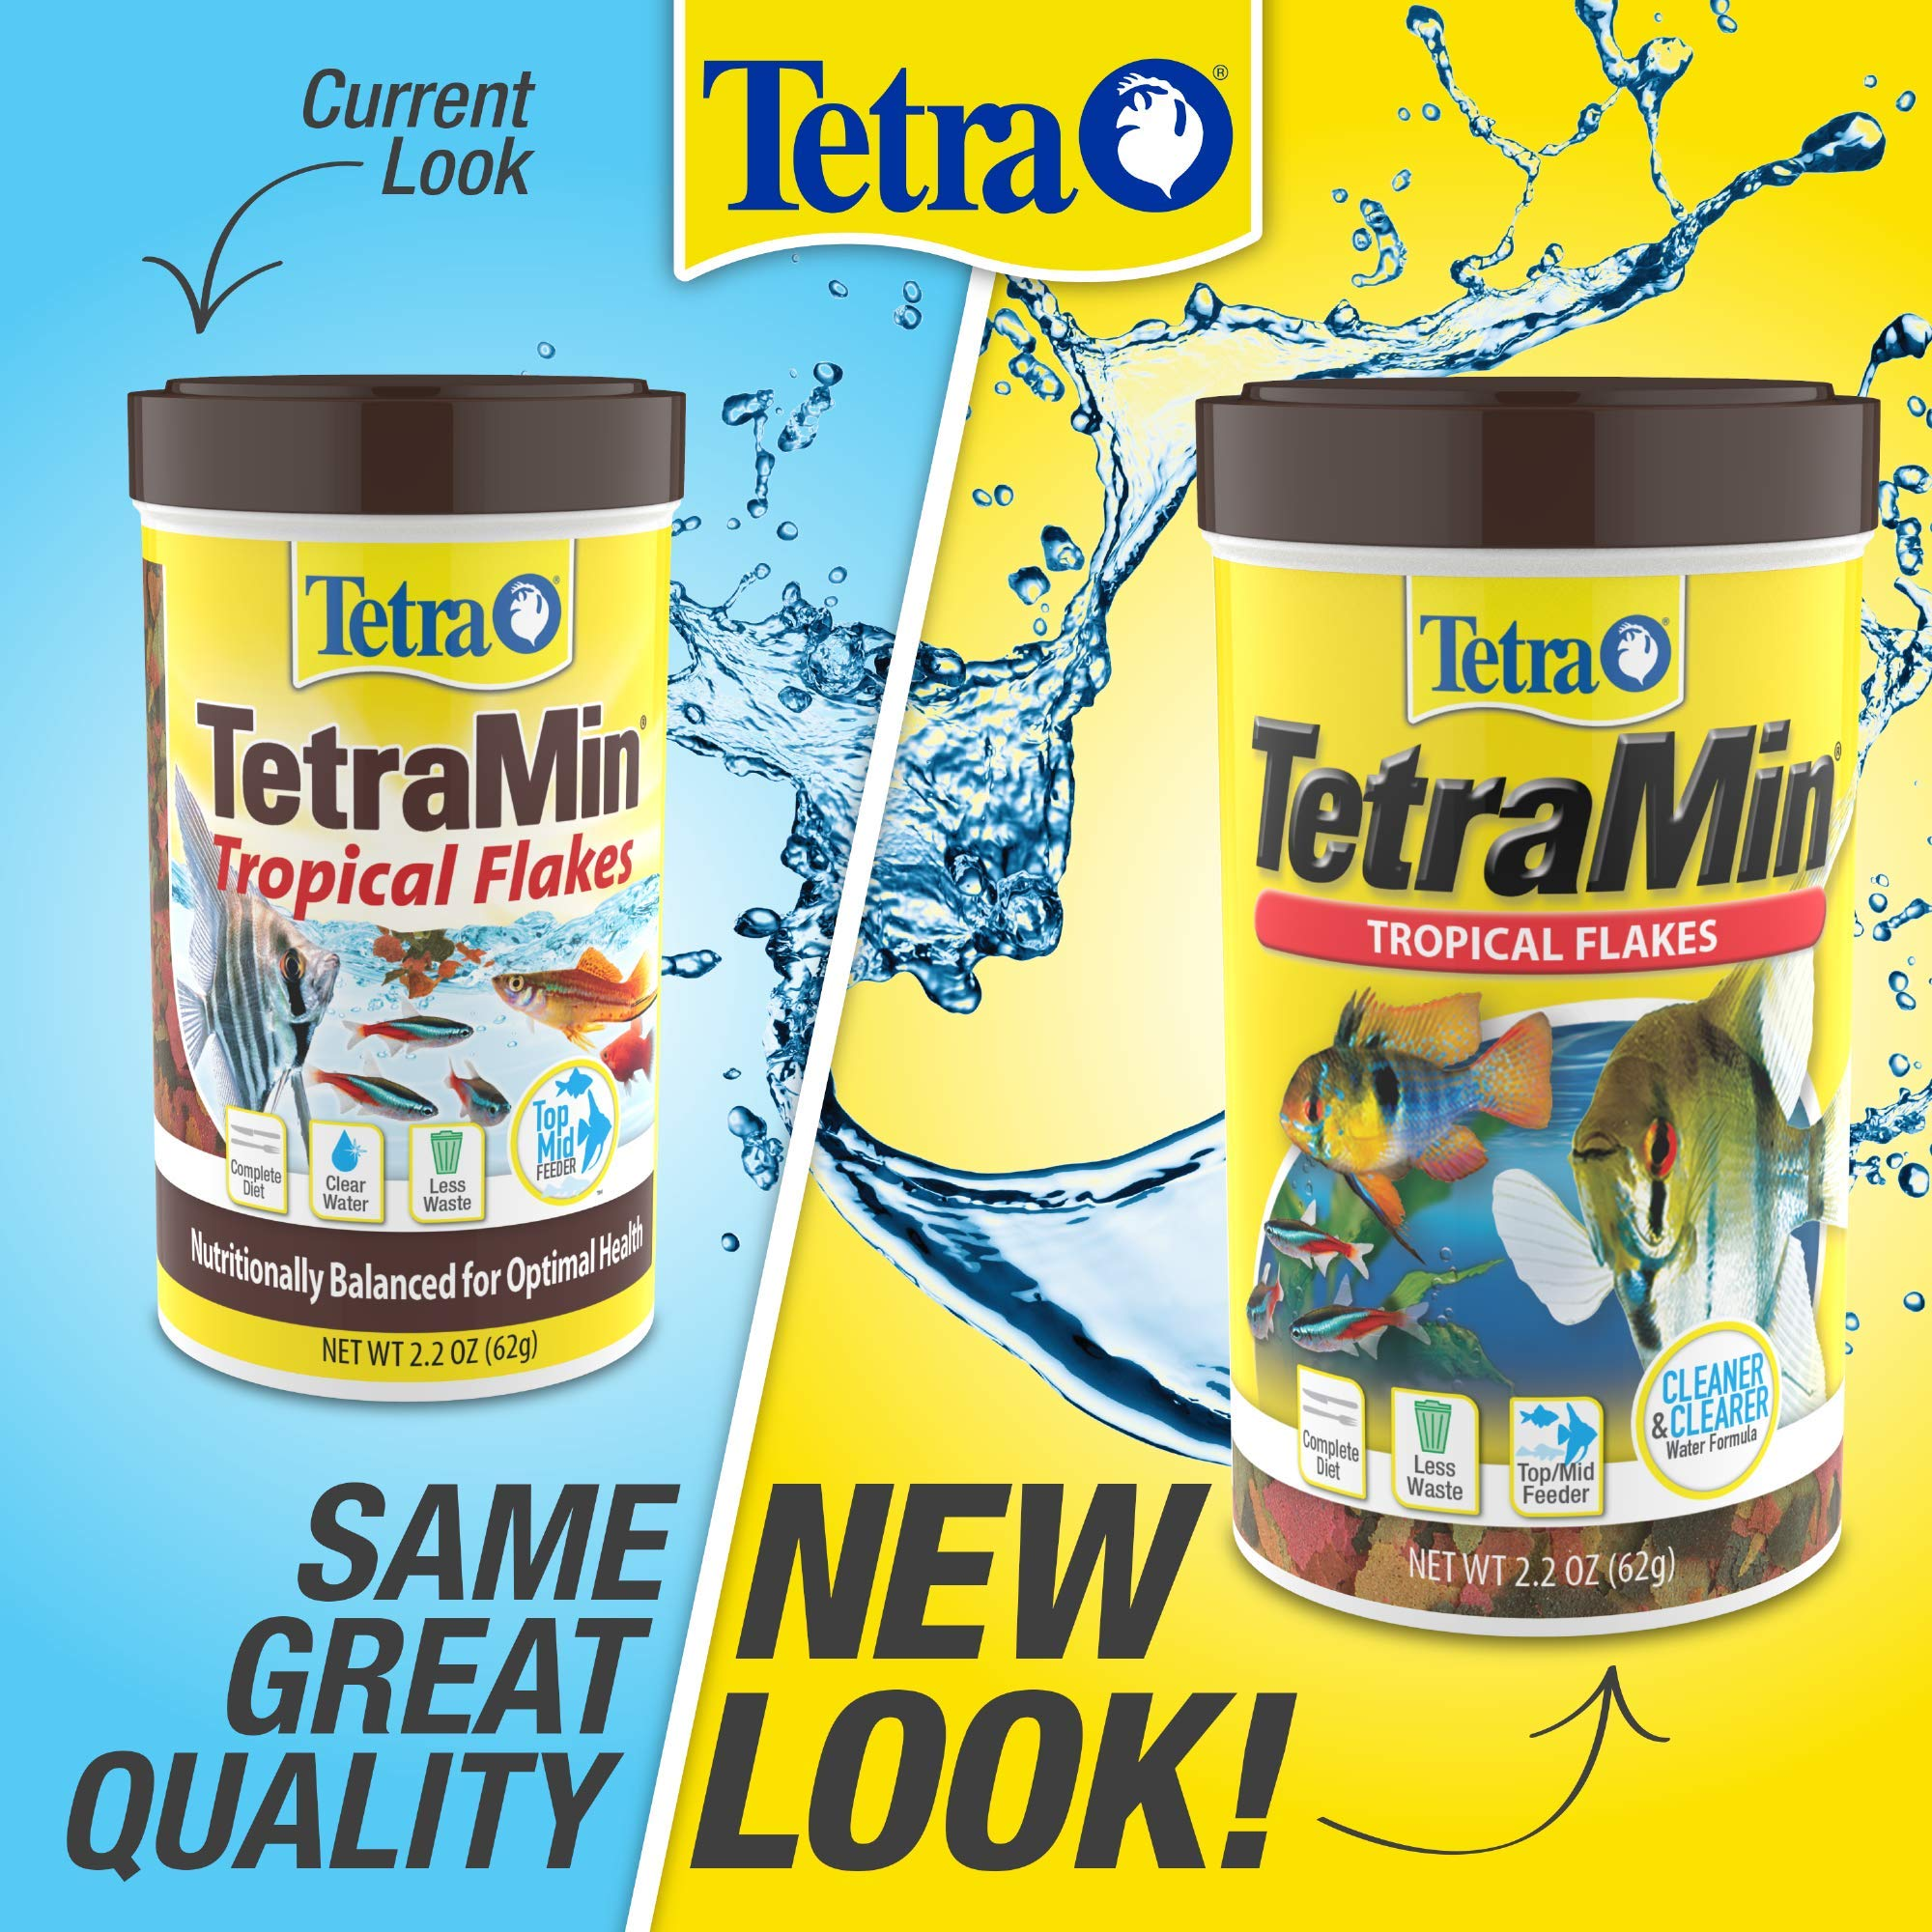 TetraMin Nutritionally Balanced Tropical Flake Food for Tropical Fish, 4.52-Pound by Tetra